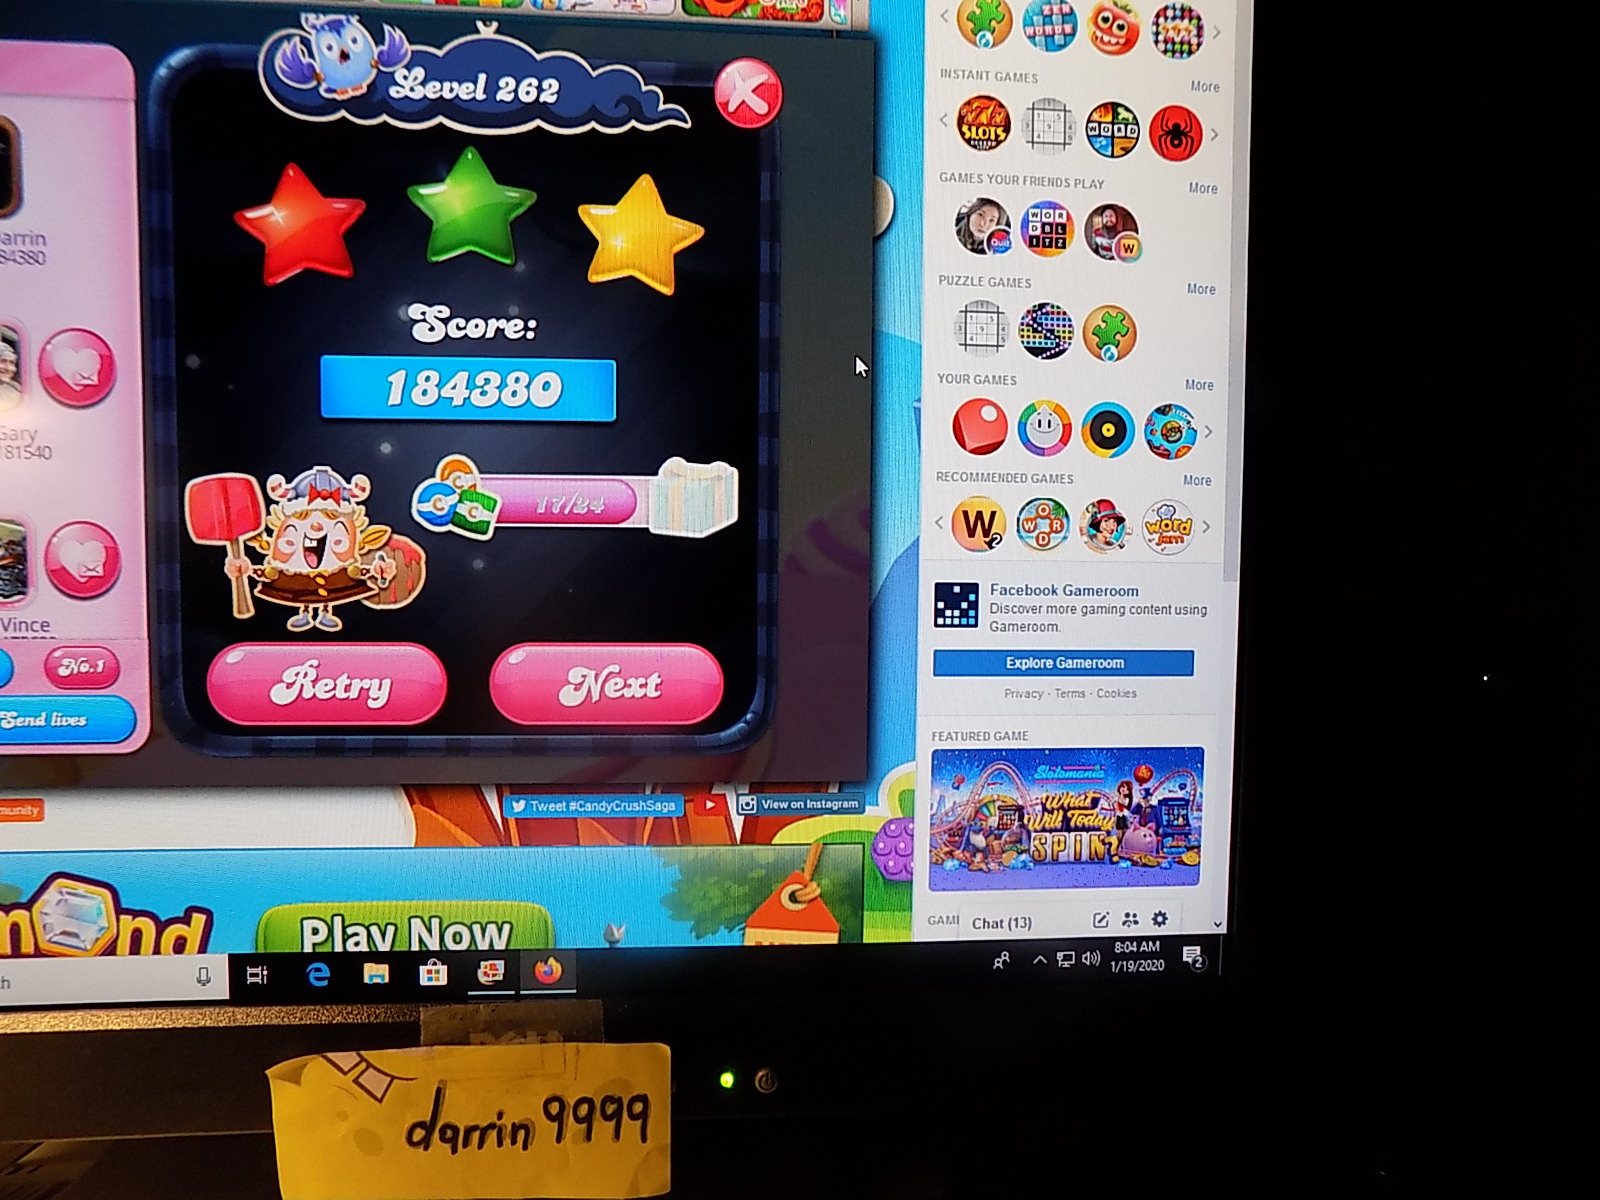 darrin9999: Candy Crush Saga: Level 262 (Web) 184,380 points on 2020-01-19 11:40:50